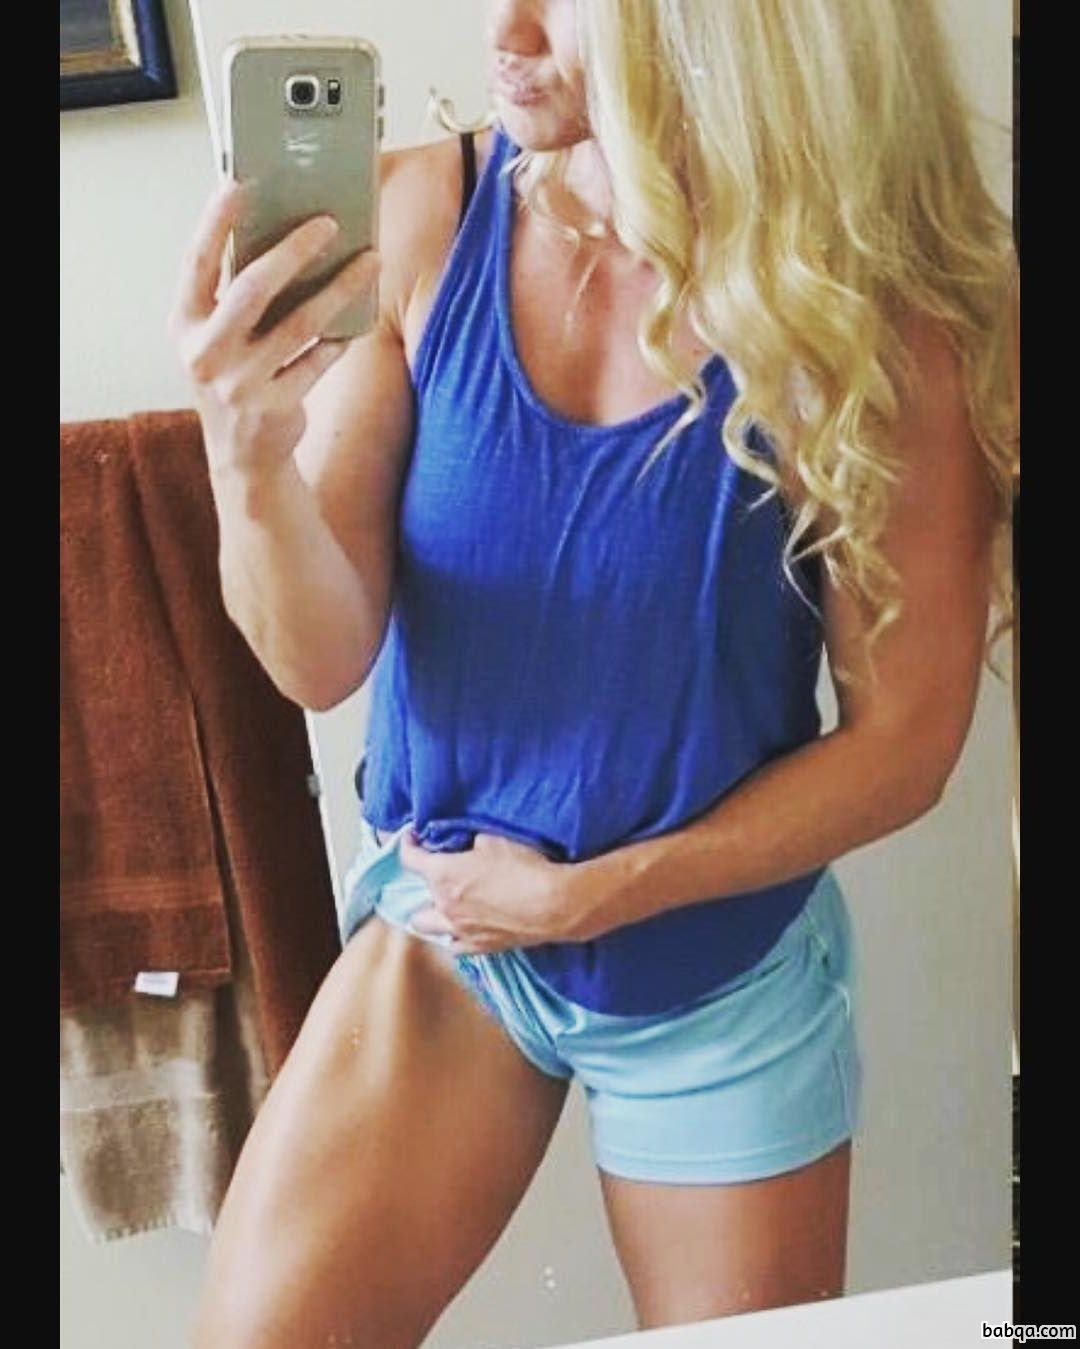 hot lady with muscular body and muscle biceps photo from reddit